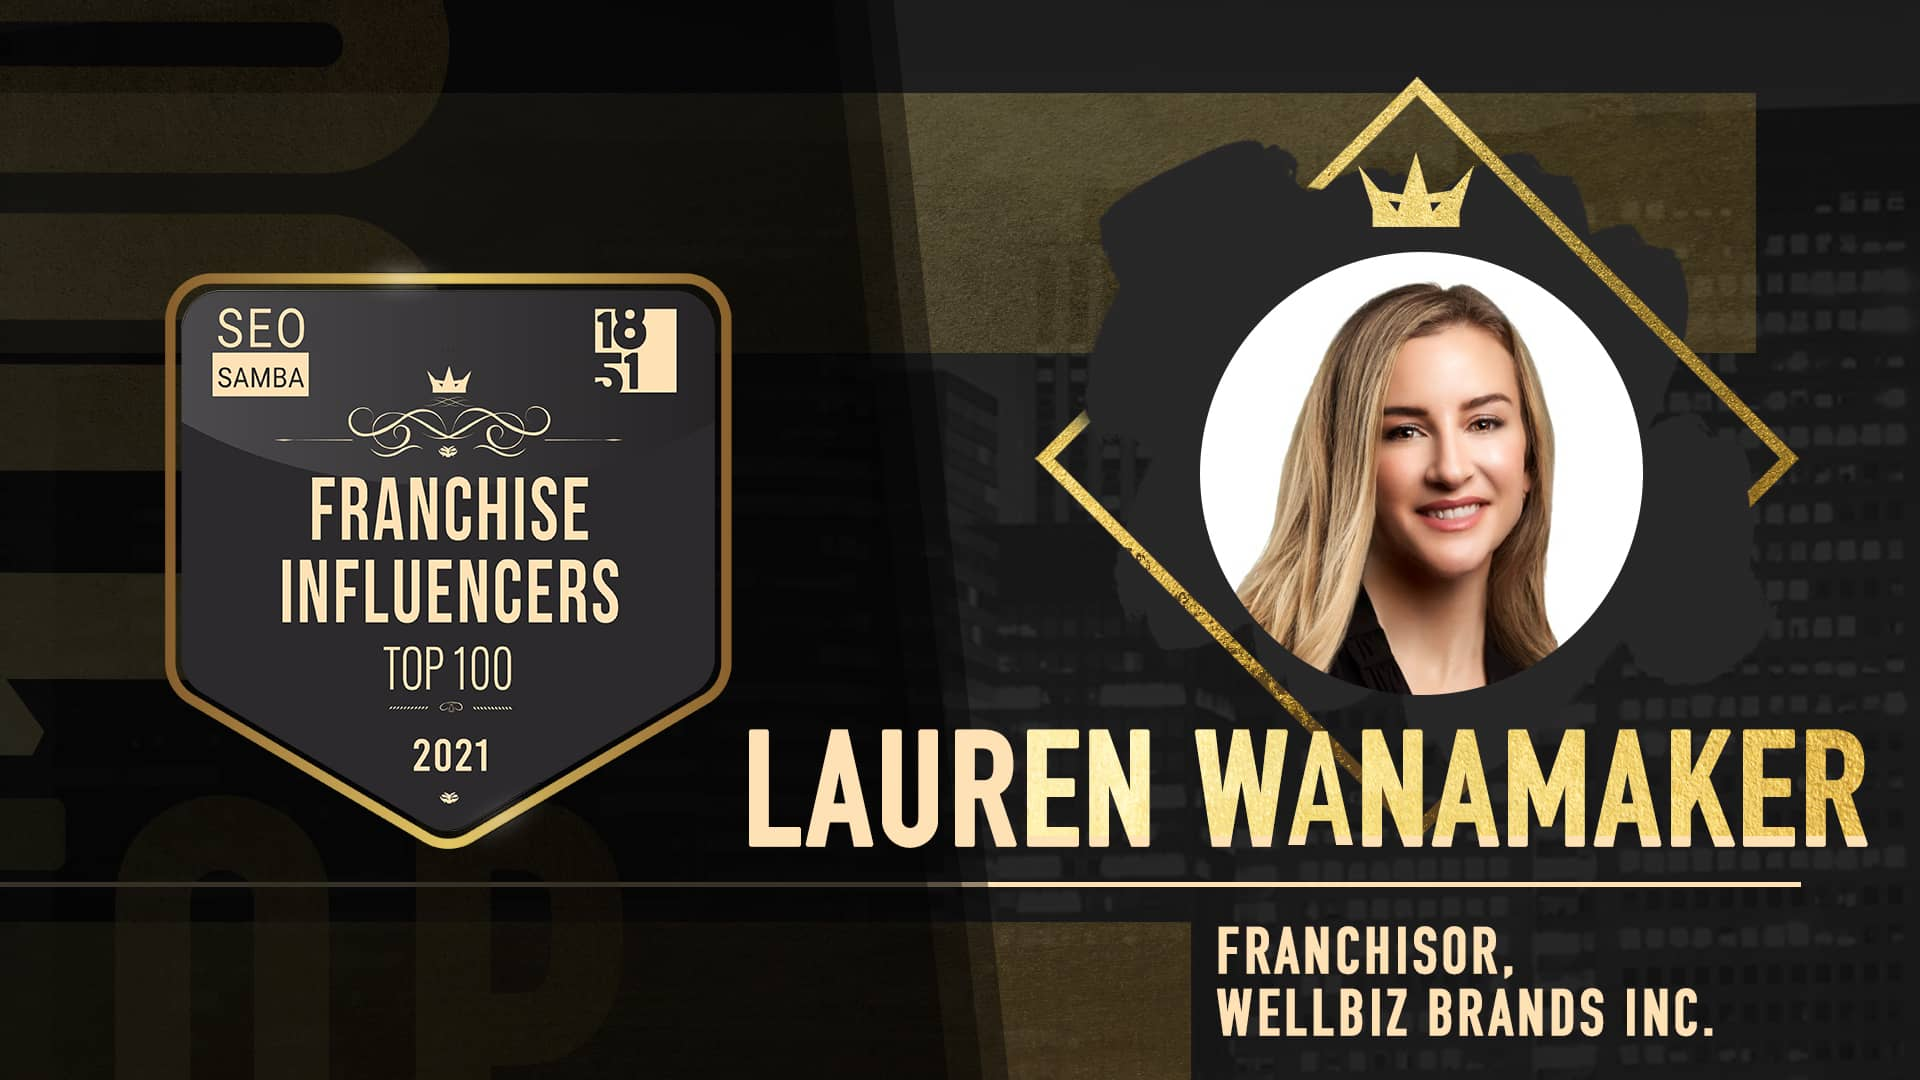 Lauren Wanamaker - WellBiz Brands